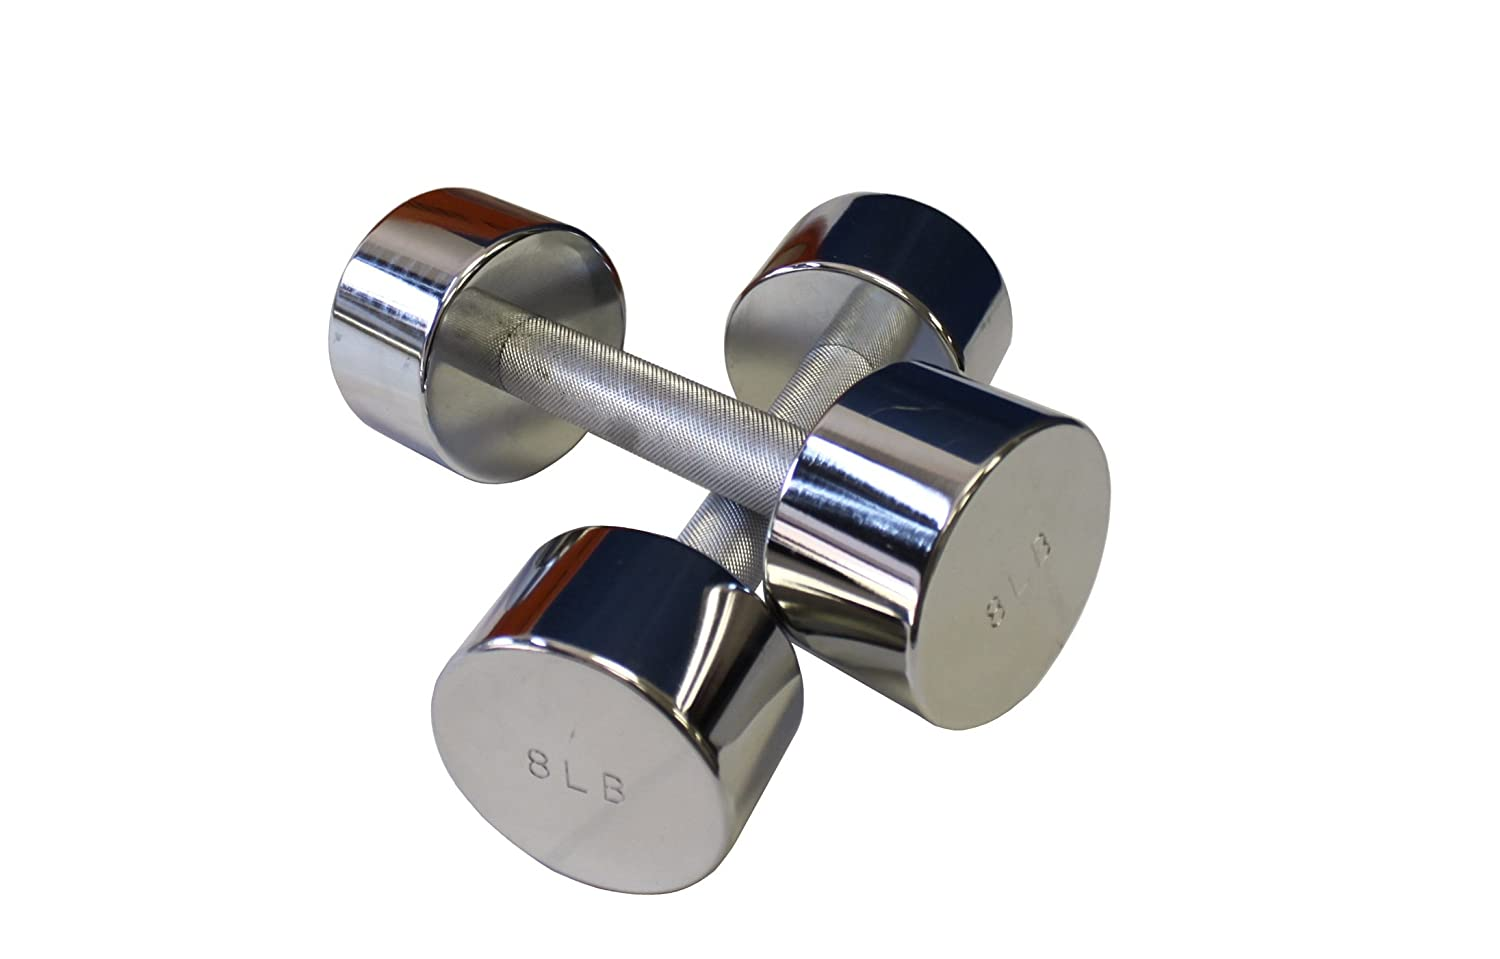 Ader Chrome Dumbbell, Sold as Pairs